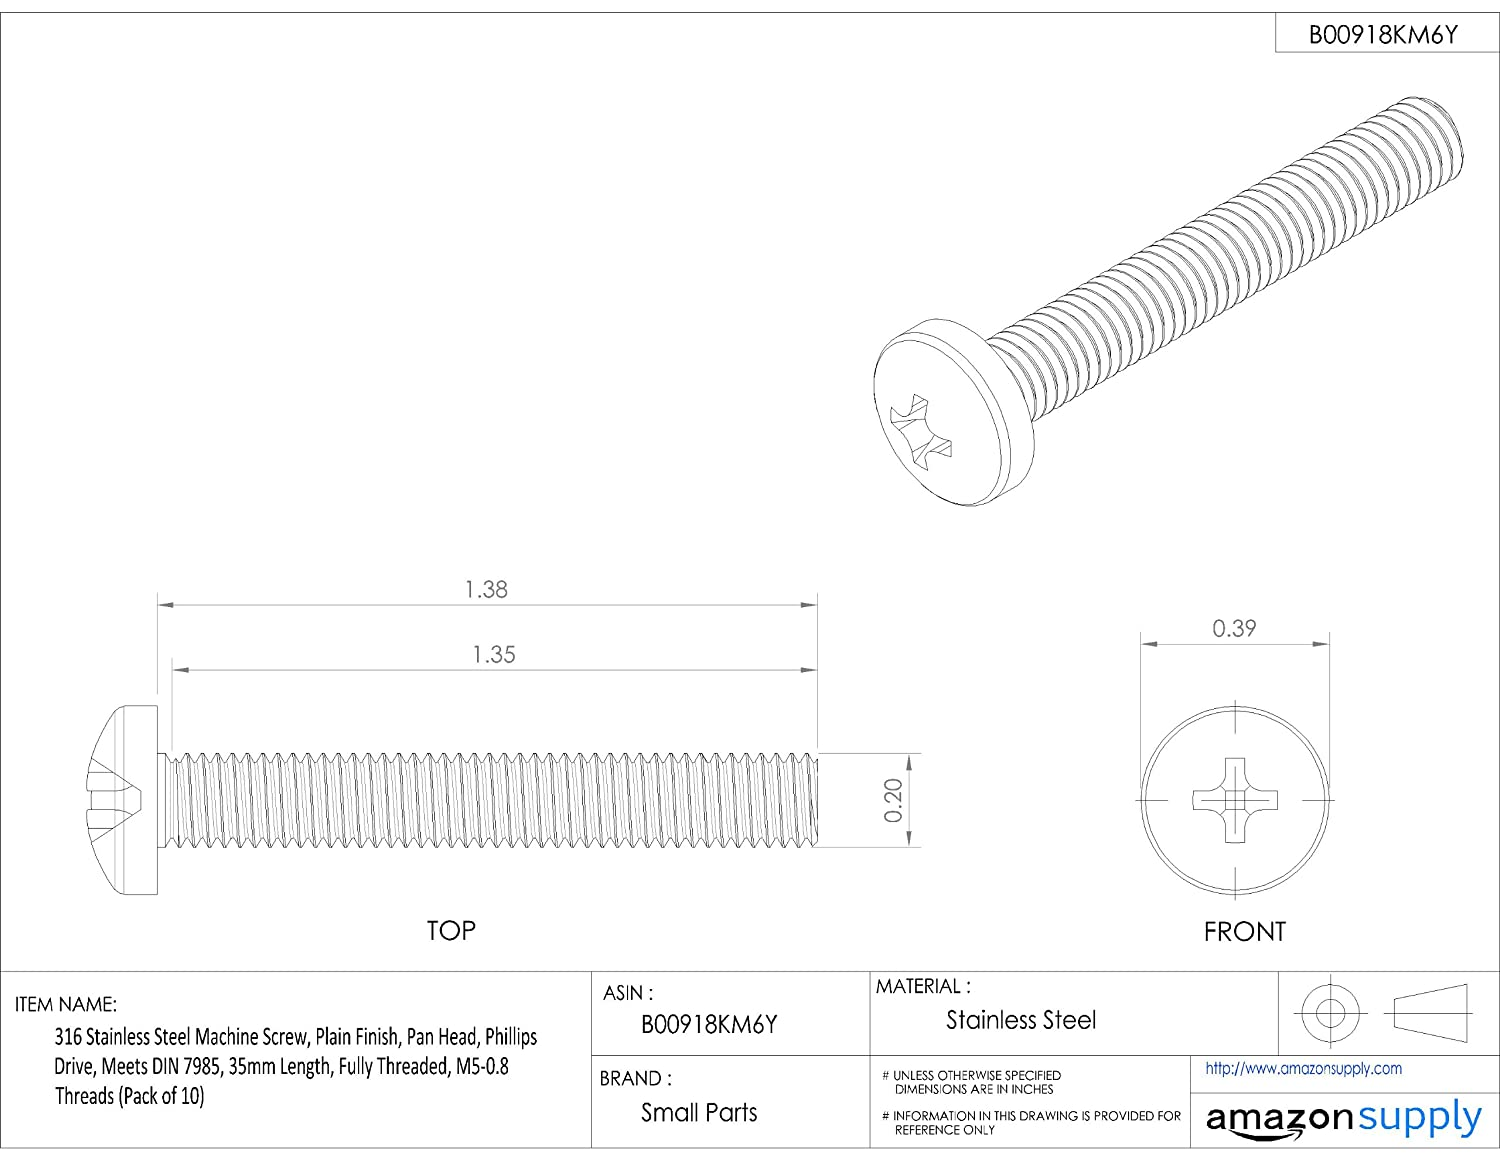 316 Stainless Steel Machine Screw Pack of 10 Pan Head 35mm Length M5-0.8 Metric Coarse Threads Phillips Drive Plain Finish Meets DIN 7985 Fully Threaded